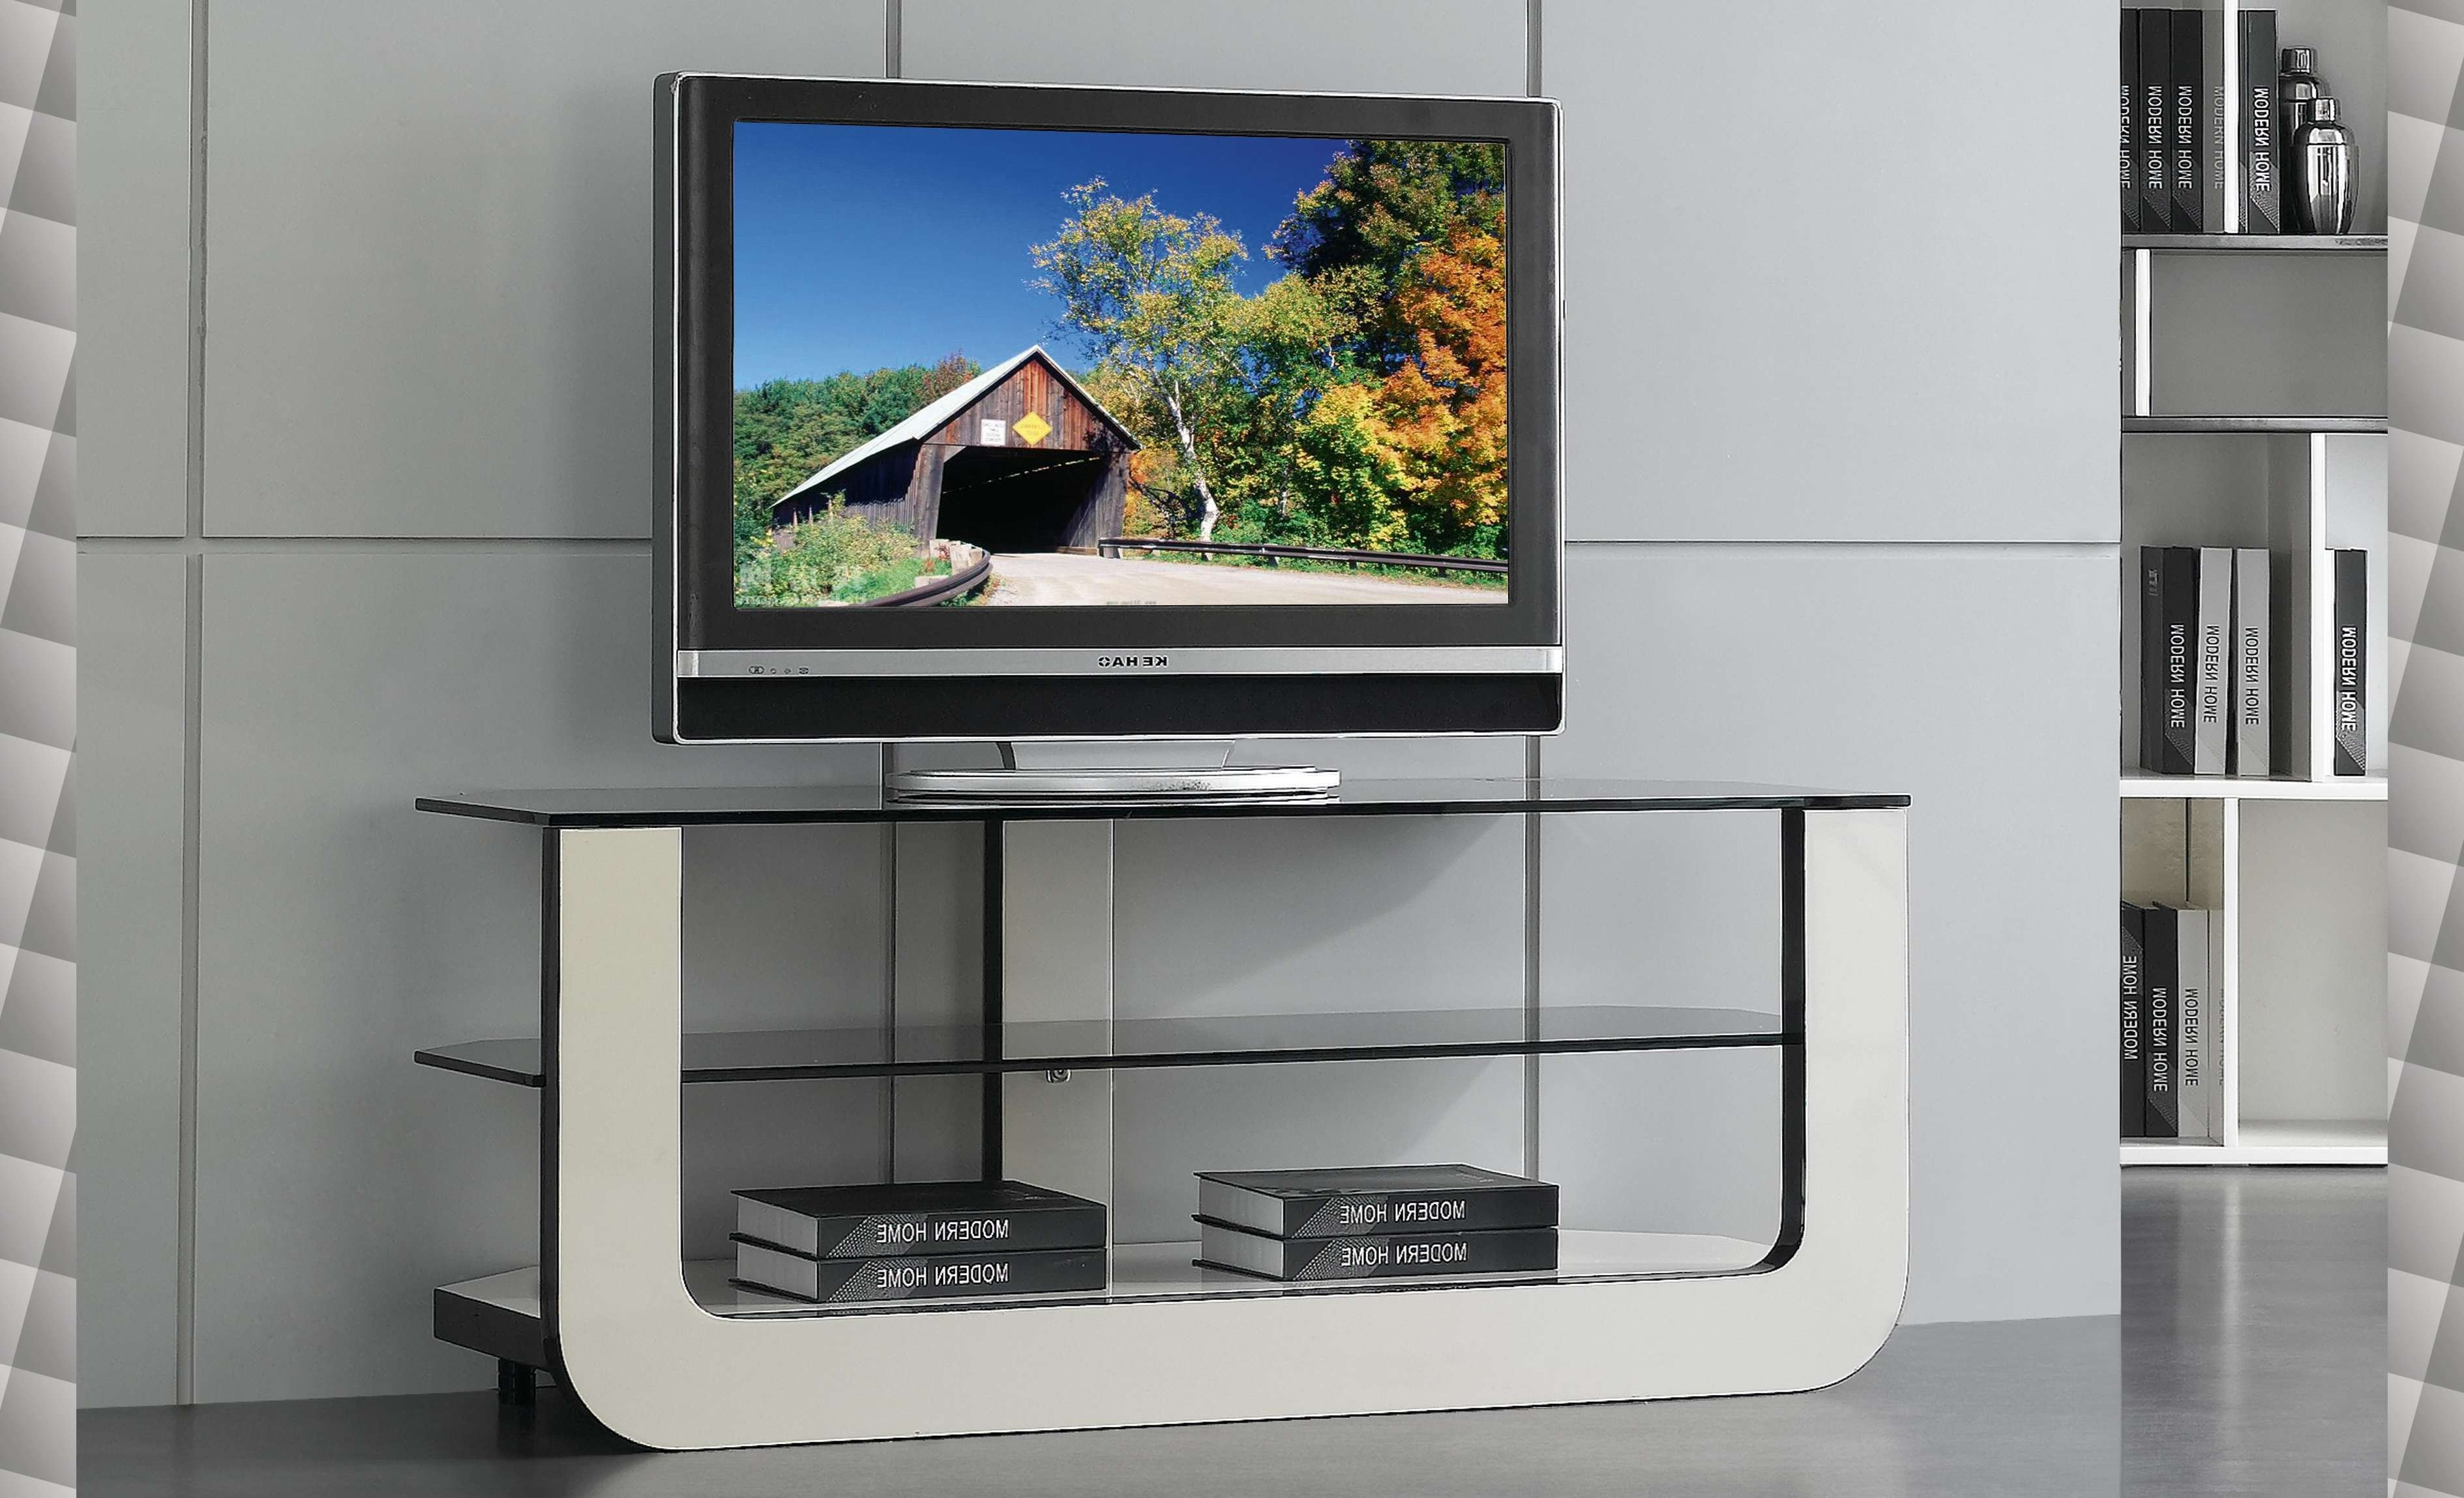 Contemporary Glass Tv Stands #14125 With Regard To Modern Glass Tv Stands (View 5 of 15)